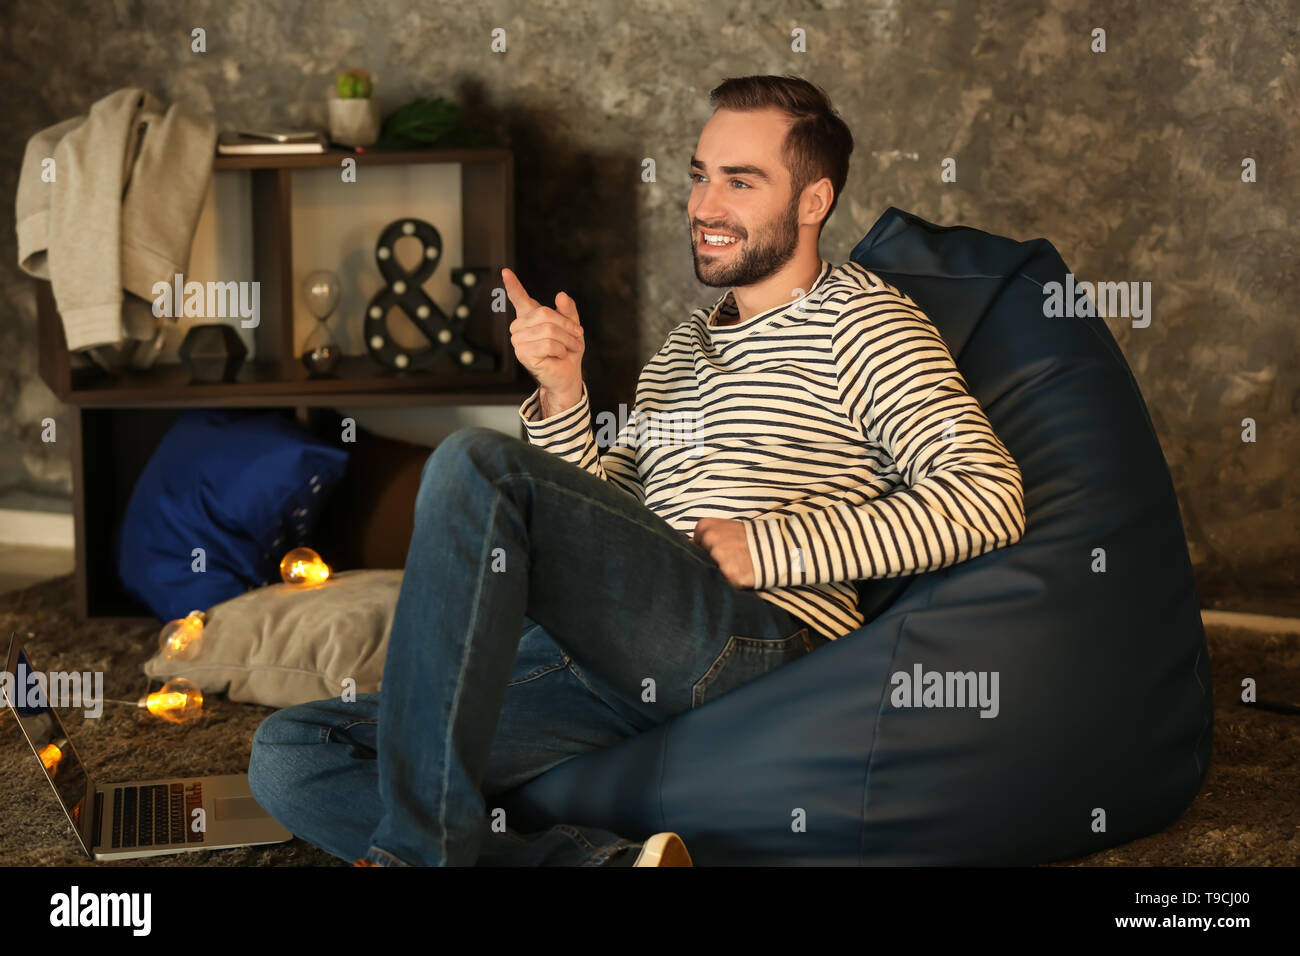 Young man sitting on beanbag chair at home - Stock Image